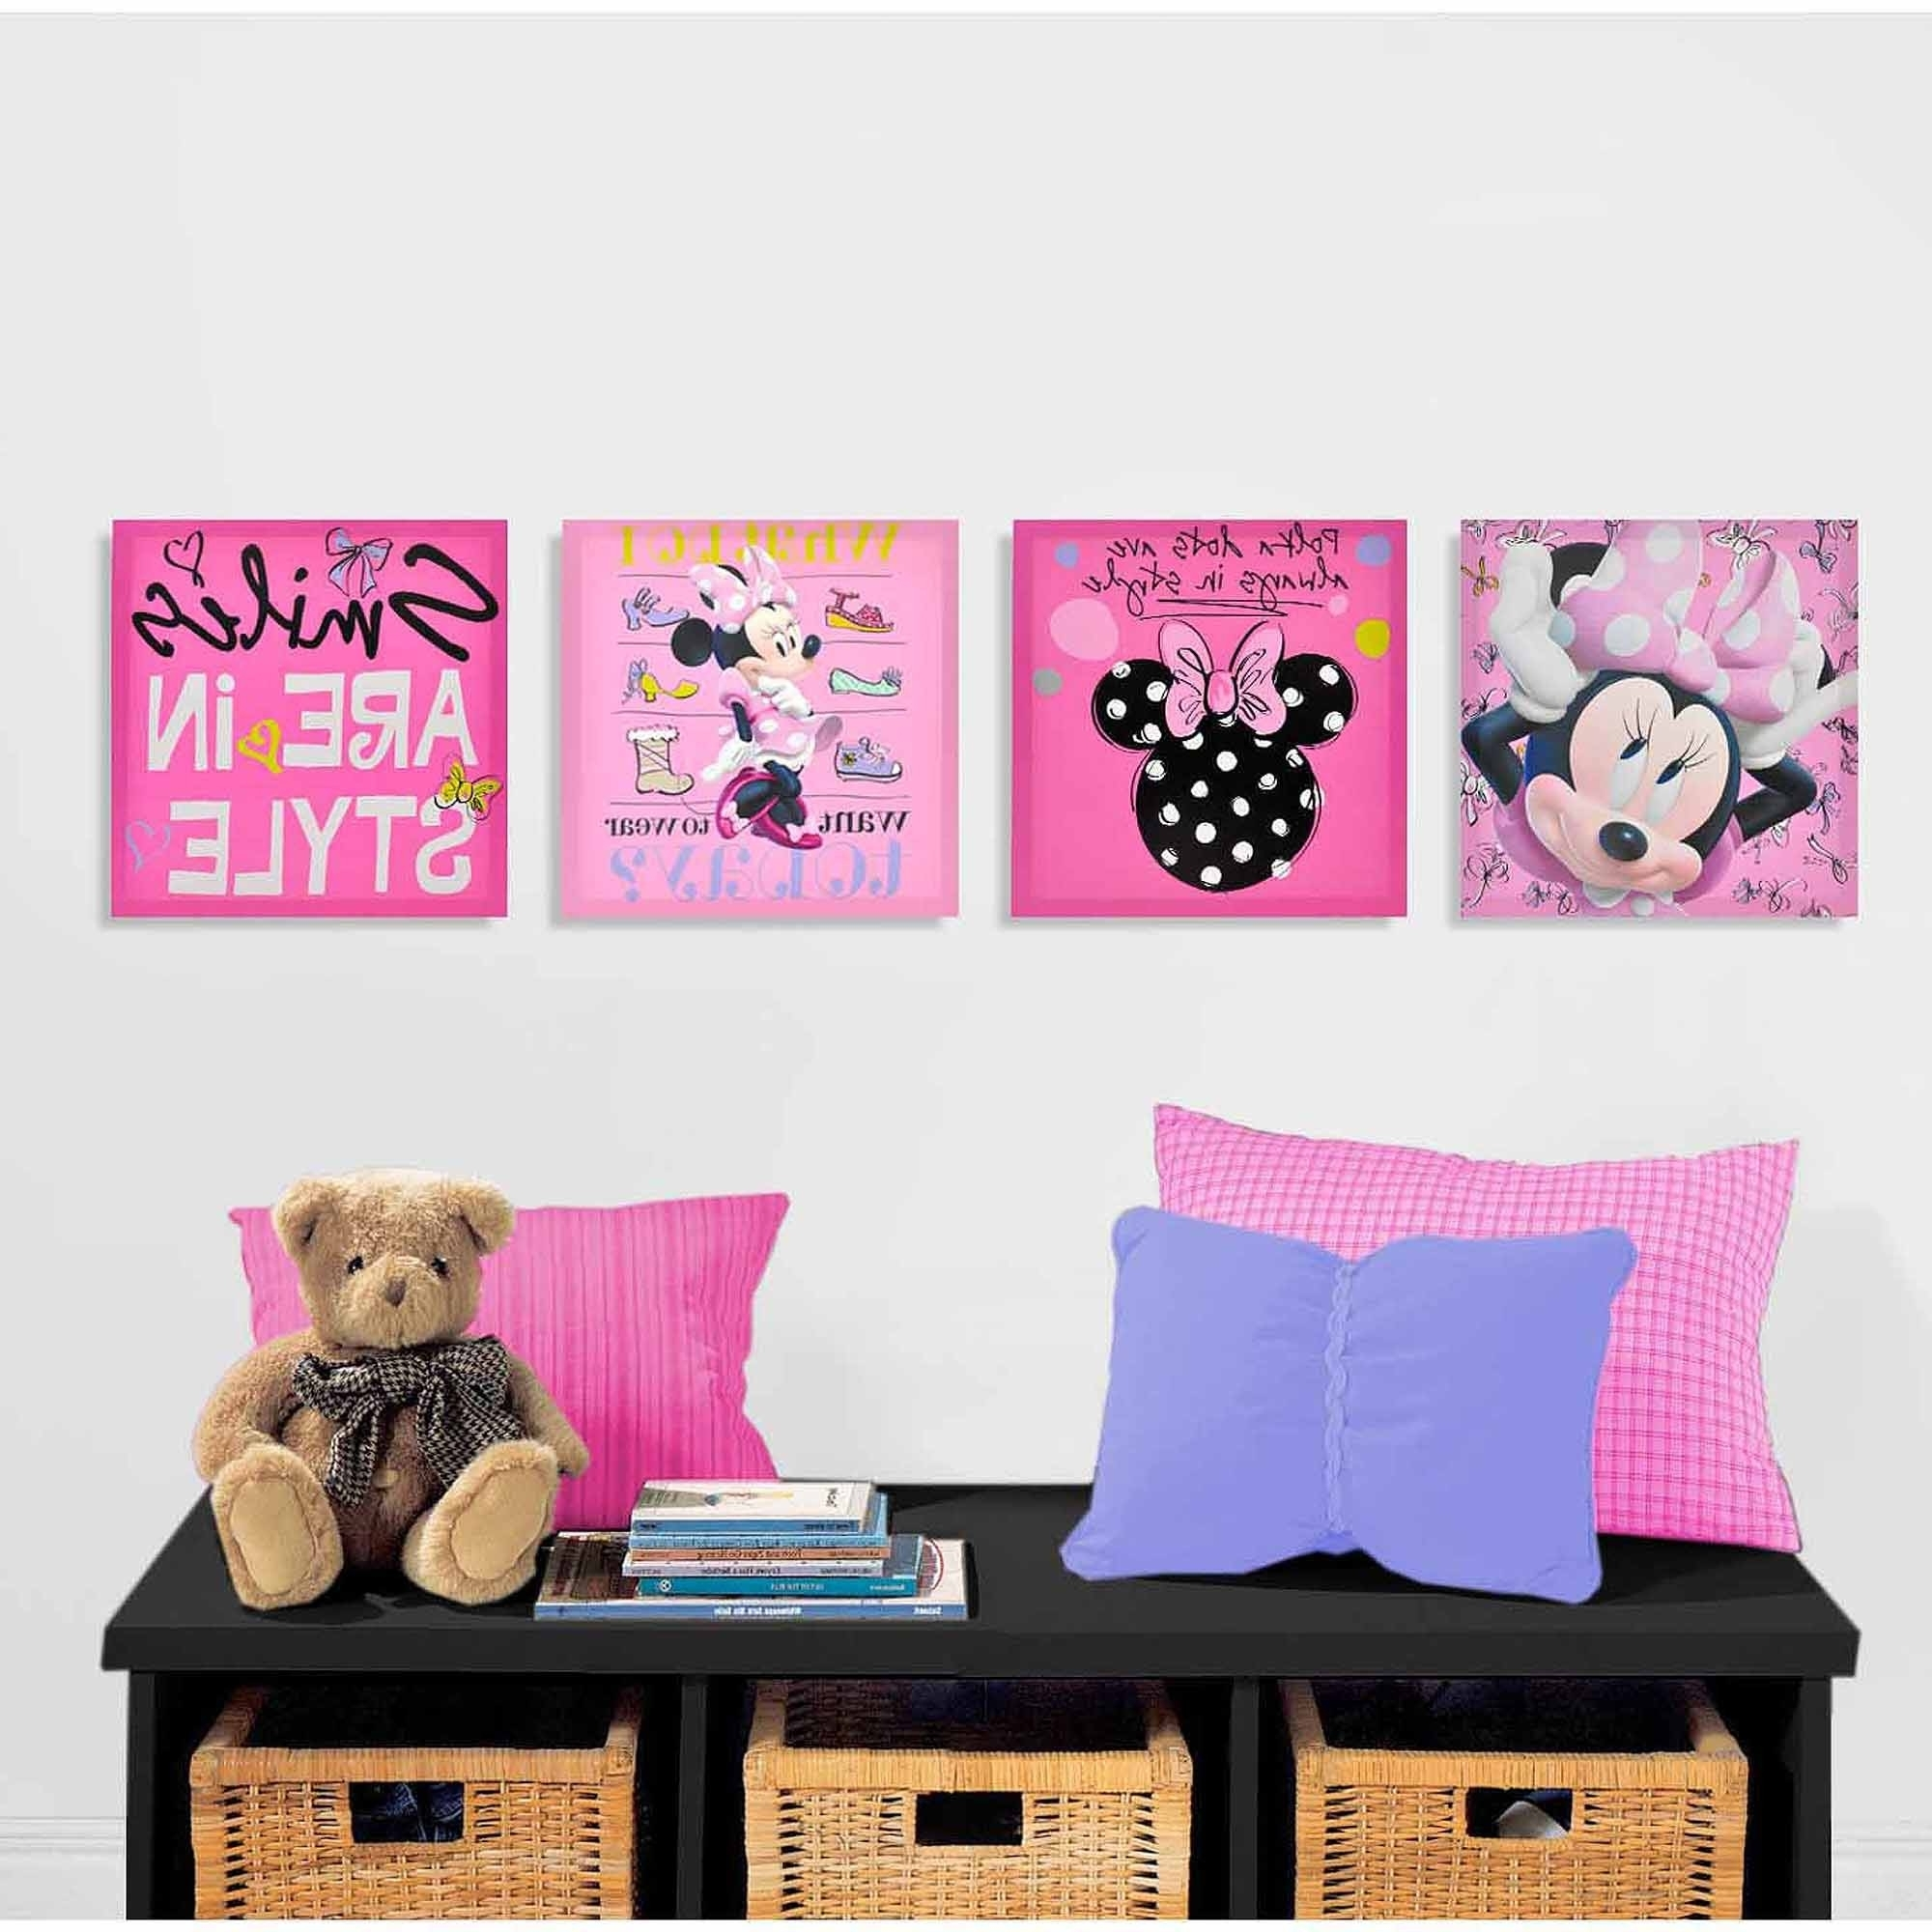 Walmart Wall Art Within Fashionable Dry Erase Wall Decals Walmart Luxury 31 Awesome Walmart Wall Art (View 10 of 15)